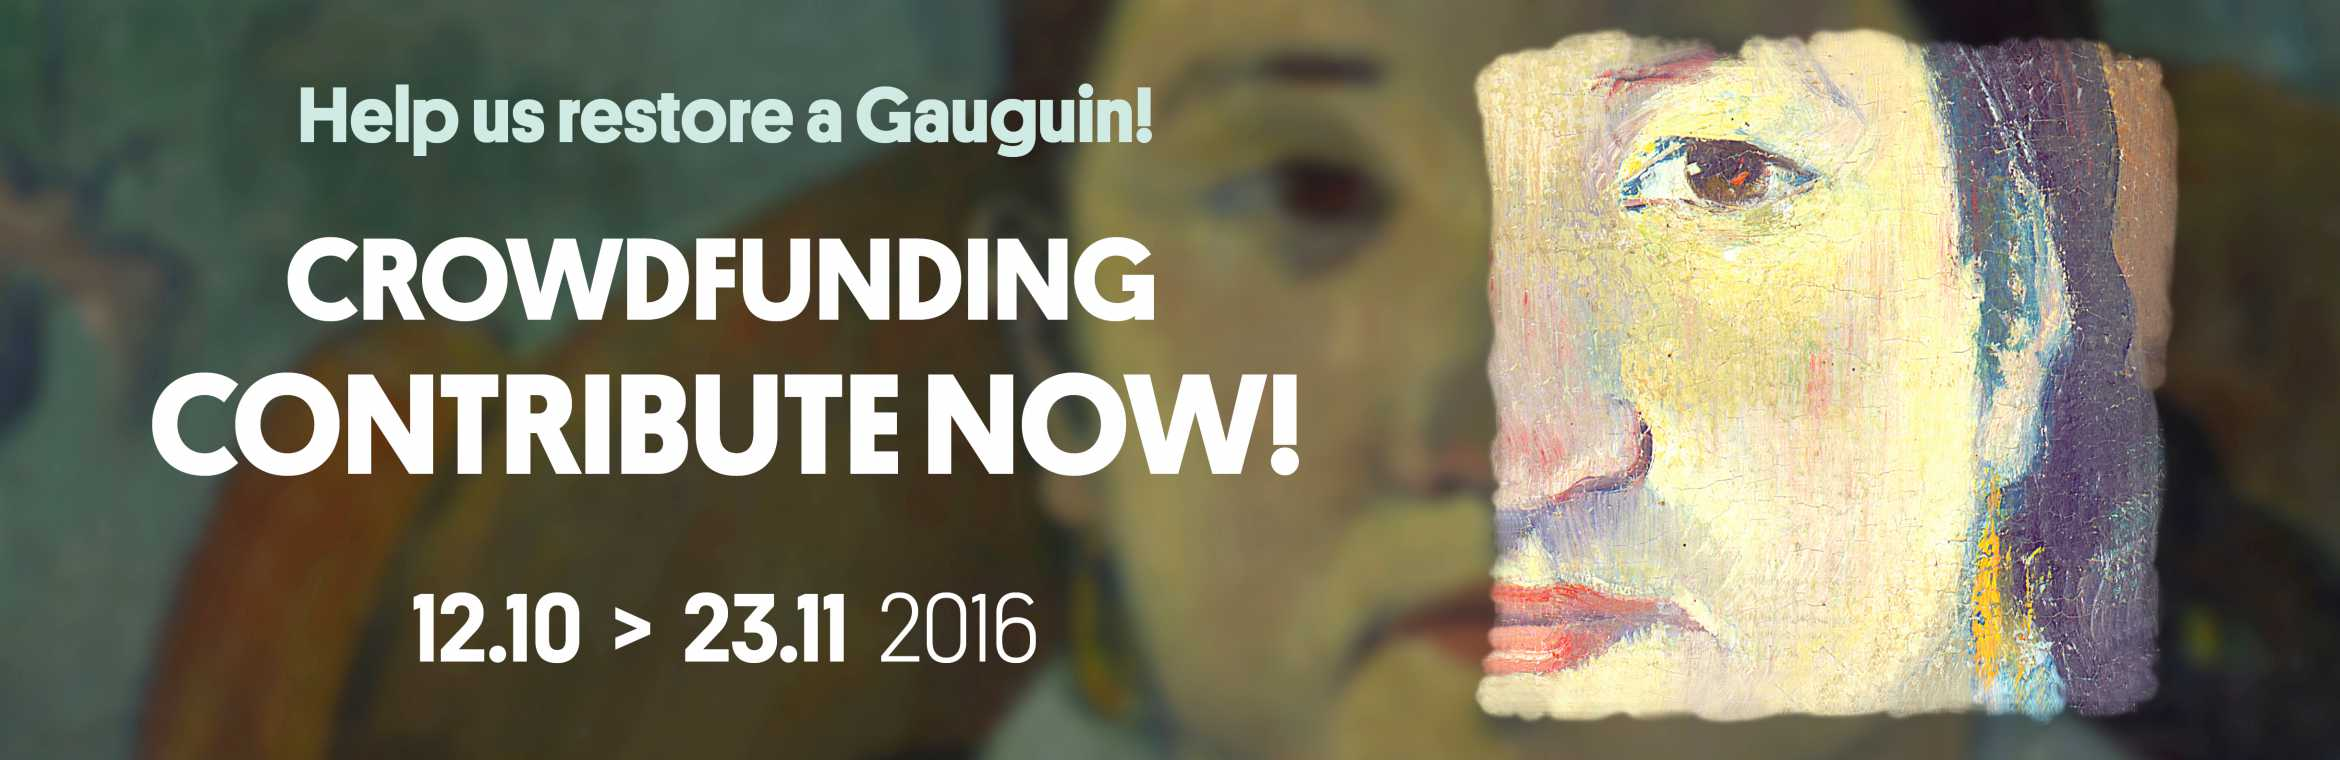 Help us restore a Gauguin! / Crowdfunding / Contribute now! /  12.10 > 23.11 2016